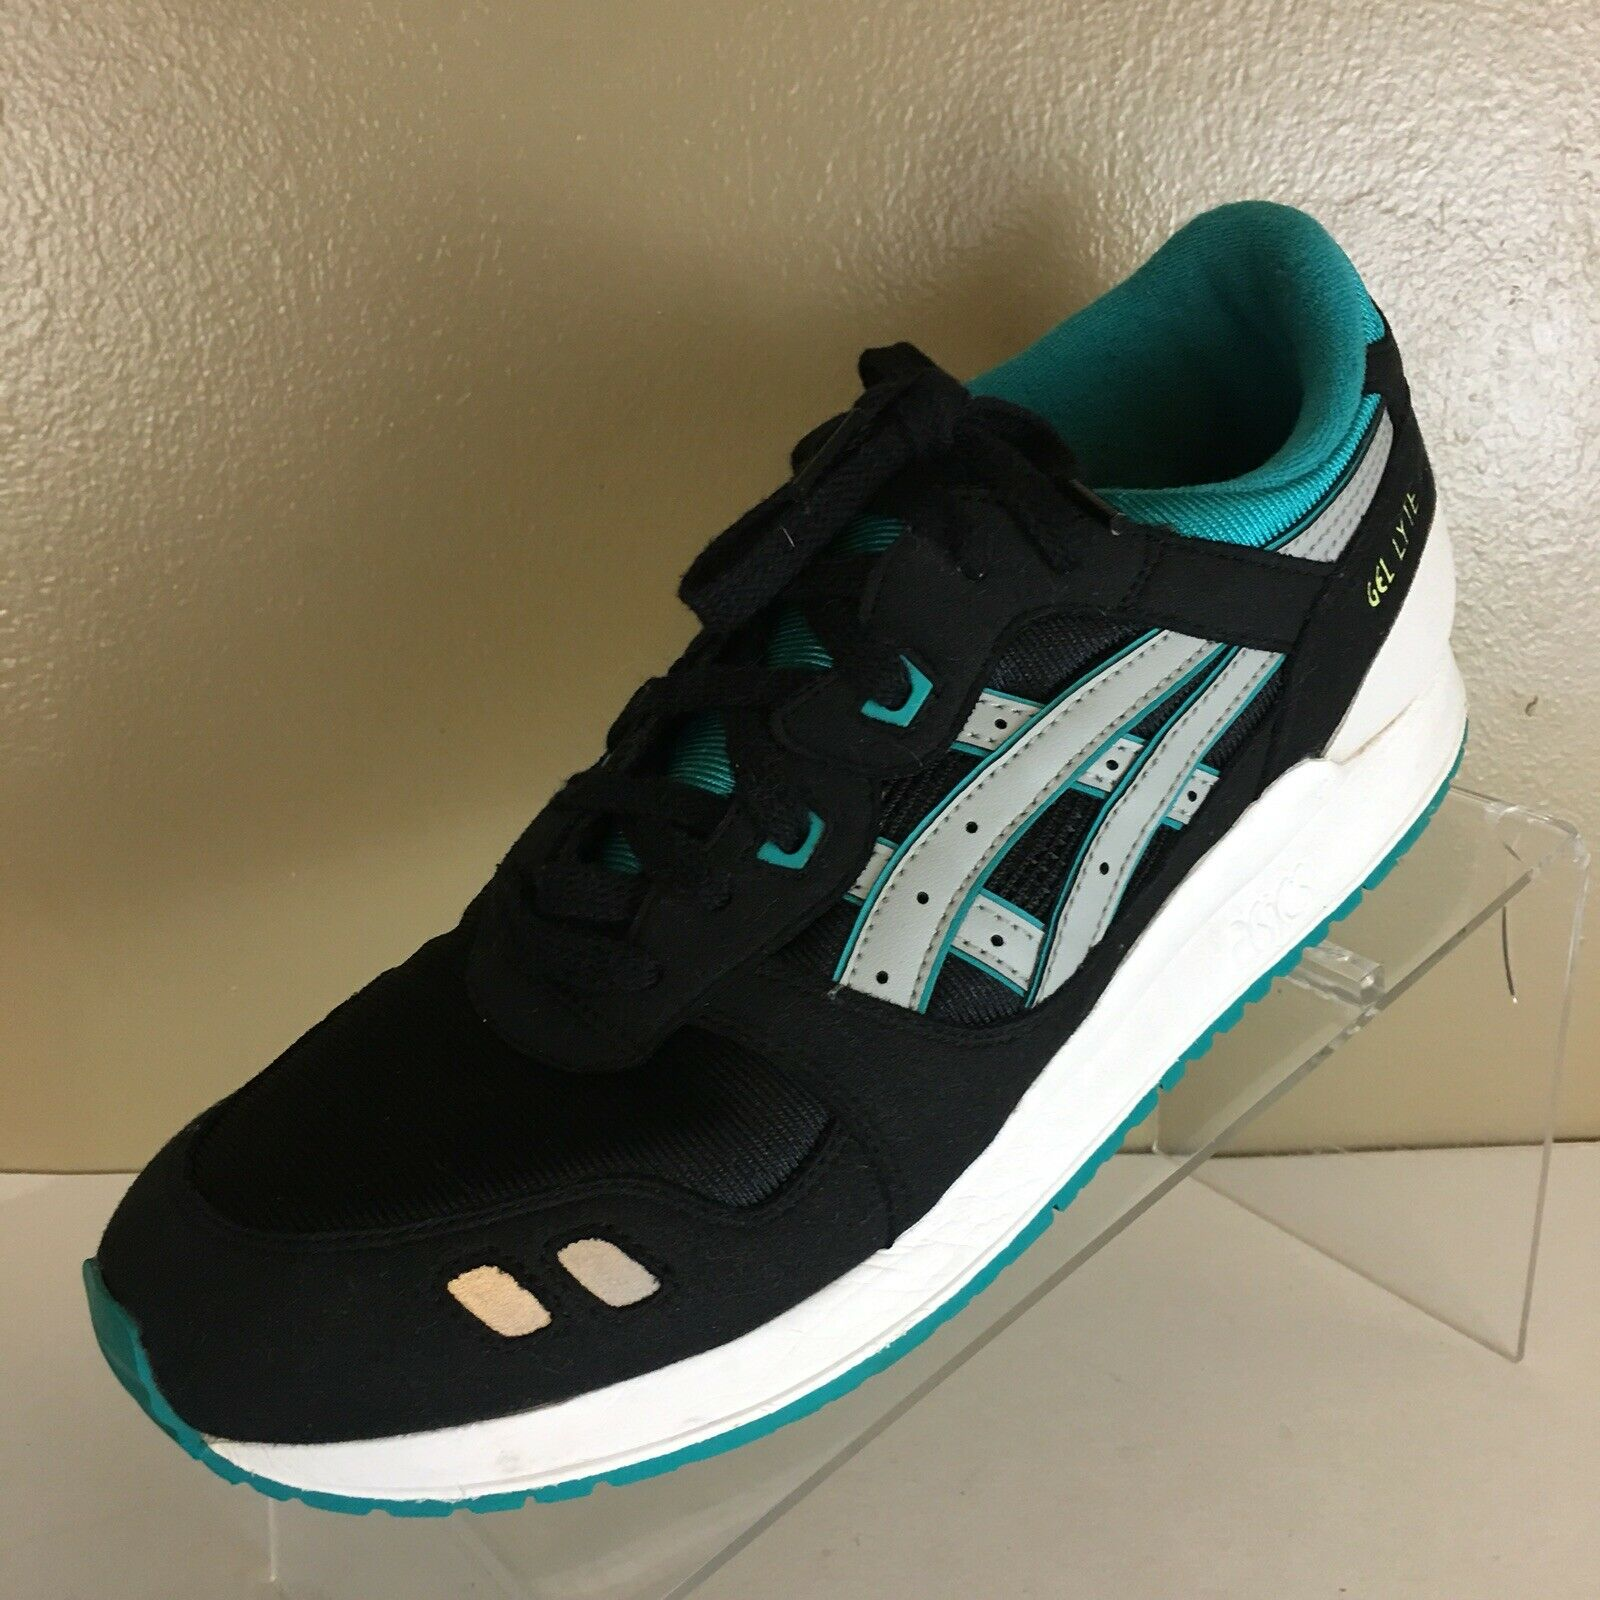 Asics Gel Lyte III Black Trainer Running  Women shoes Sneakers Size 7